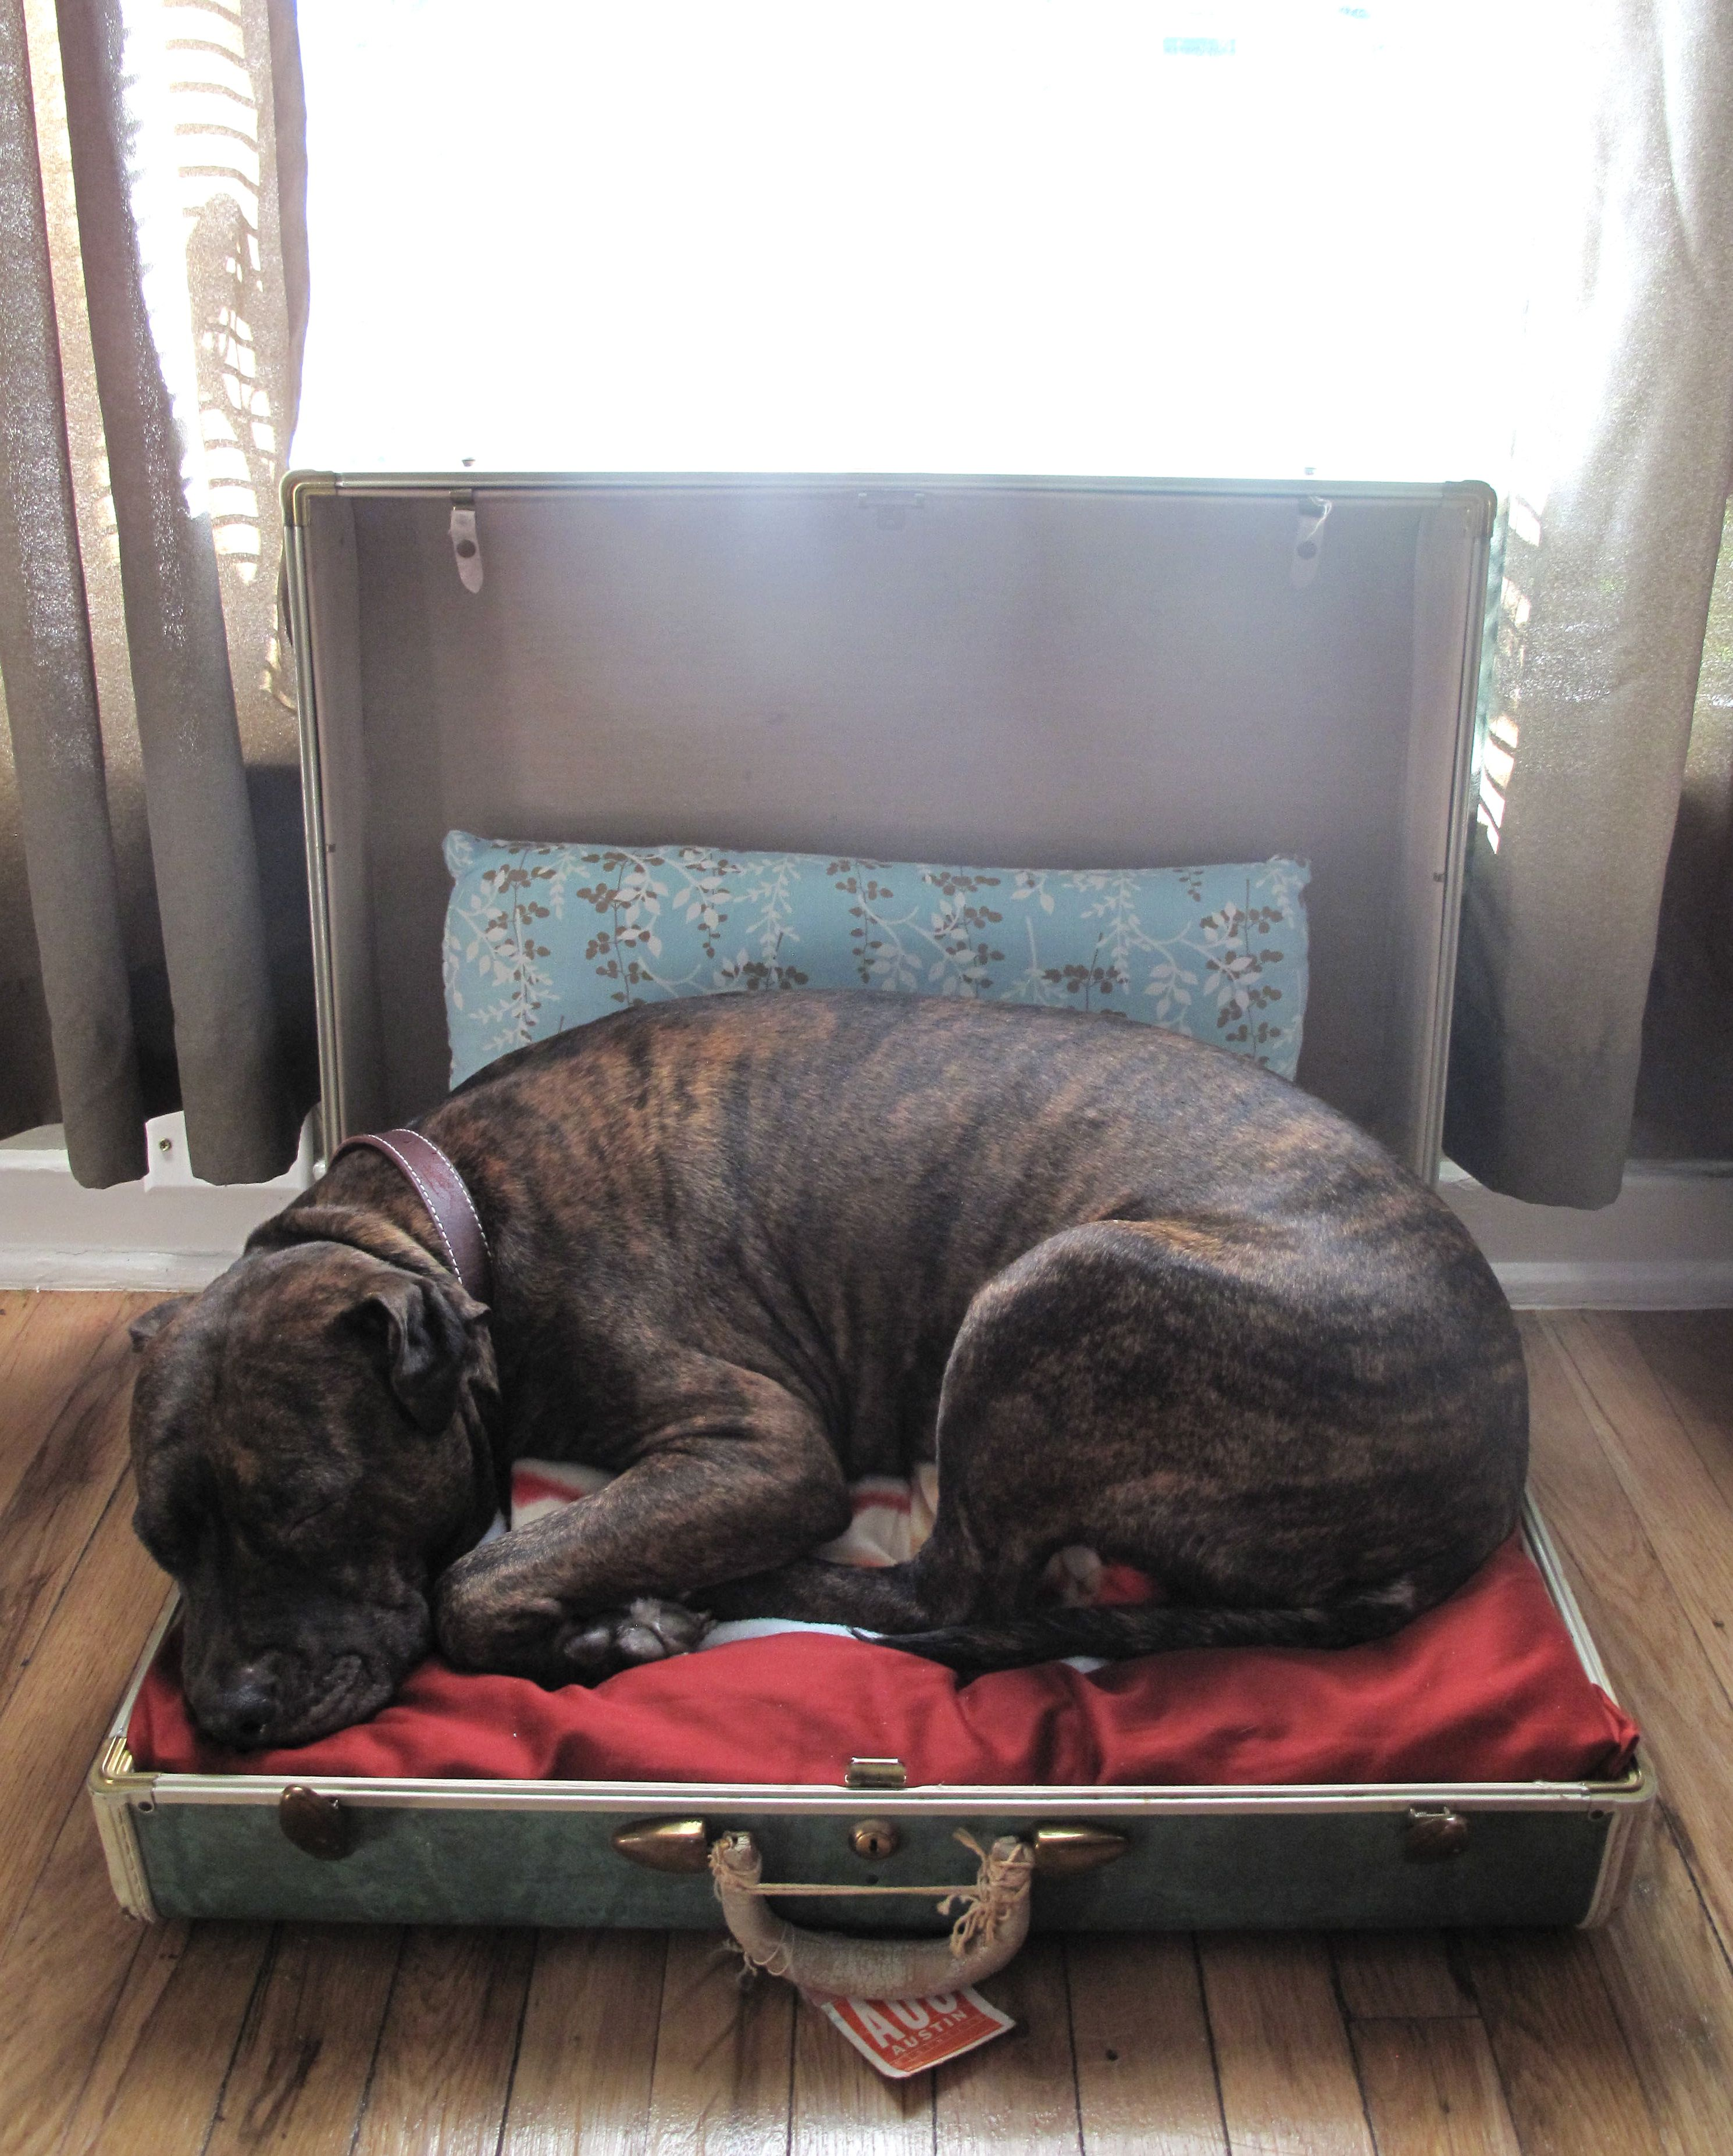 Bear in her homemade dog bed. (old suitcase) (With images